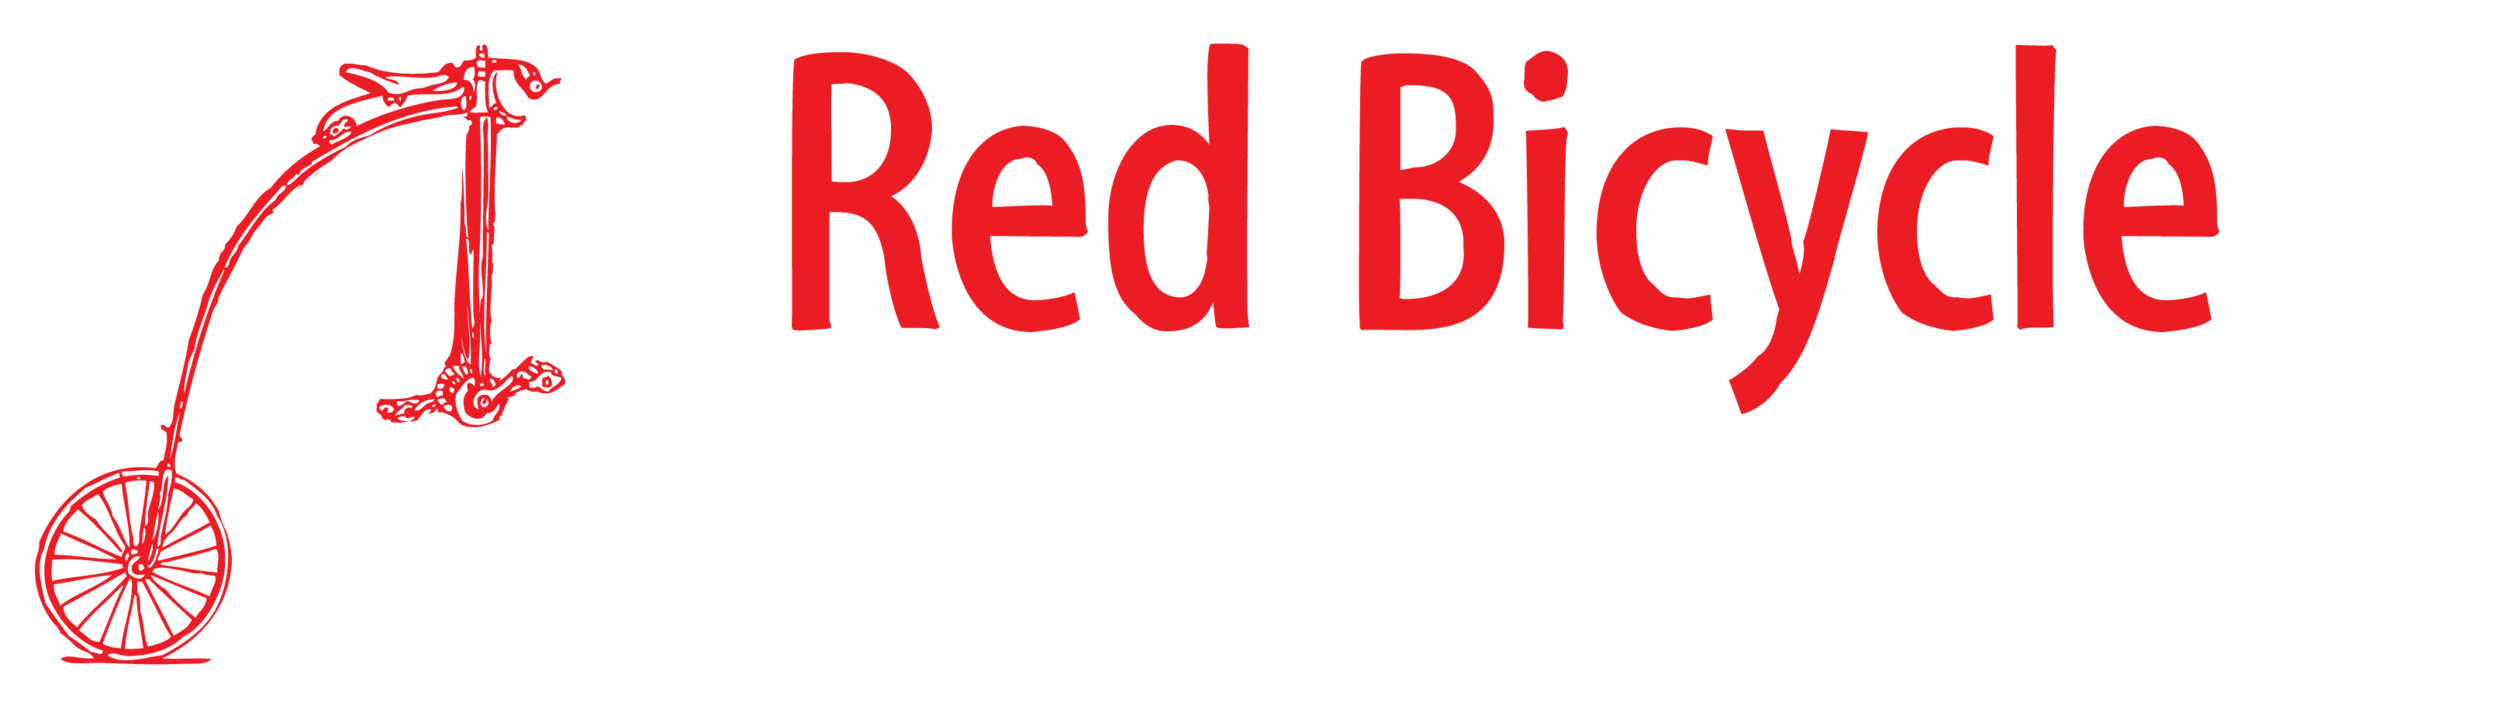 Red Bicycle Breadworks